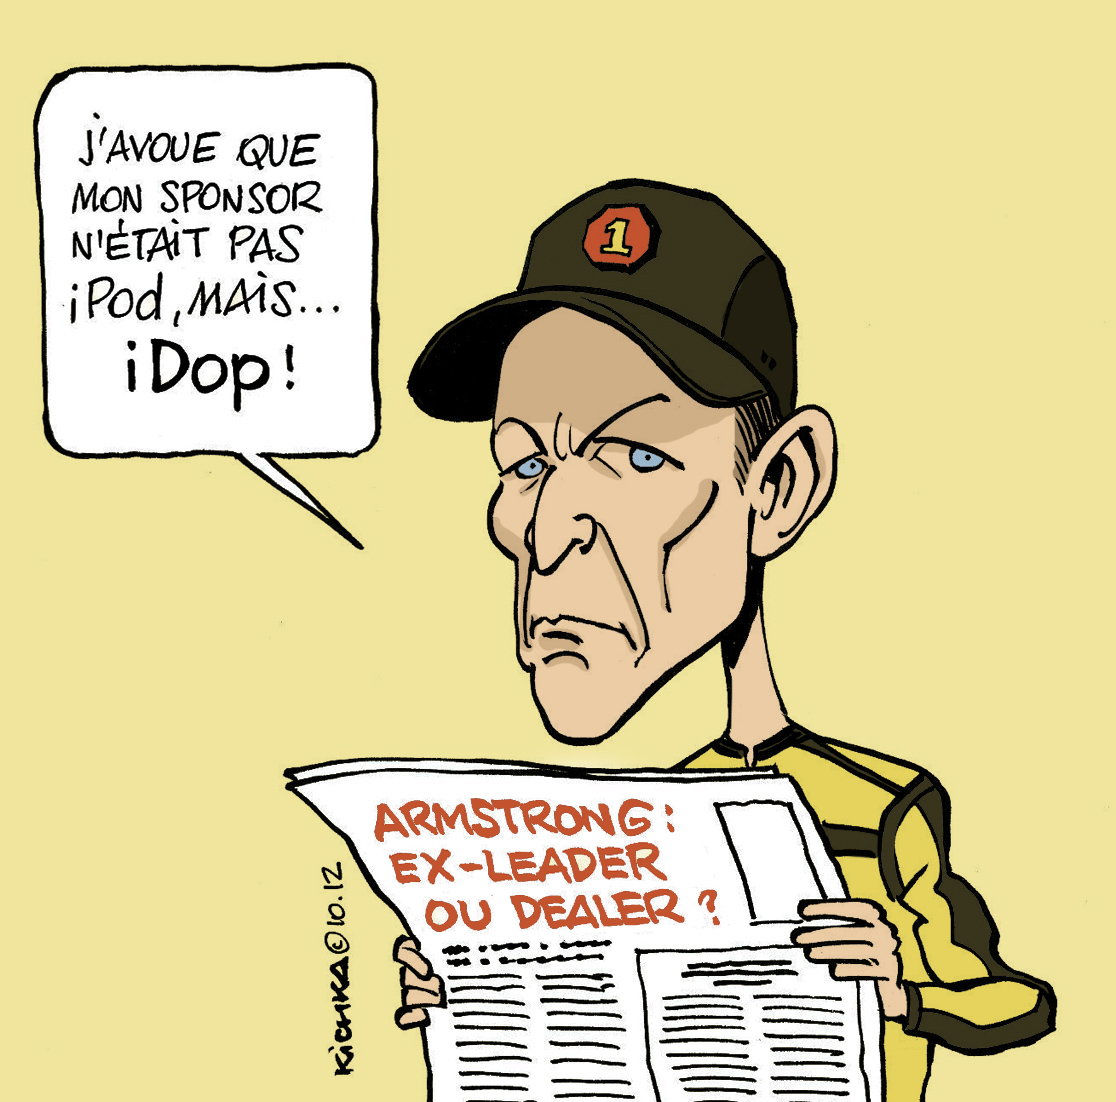 10 2 lance armstrong: